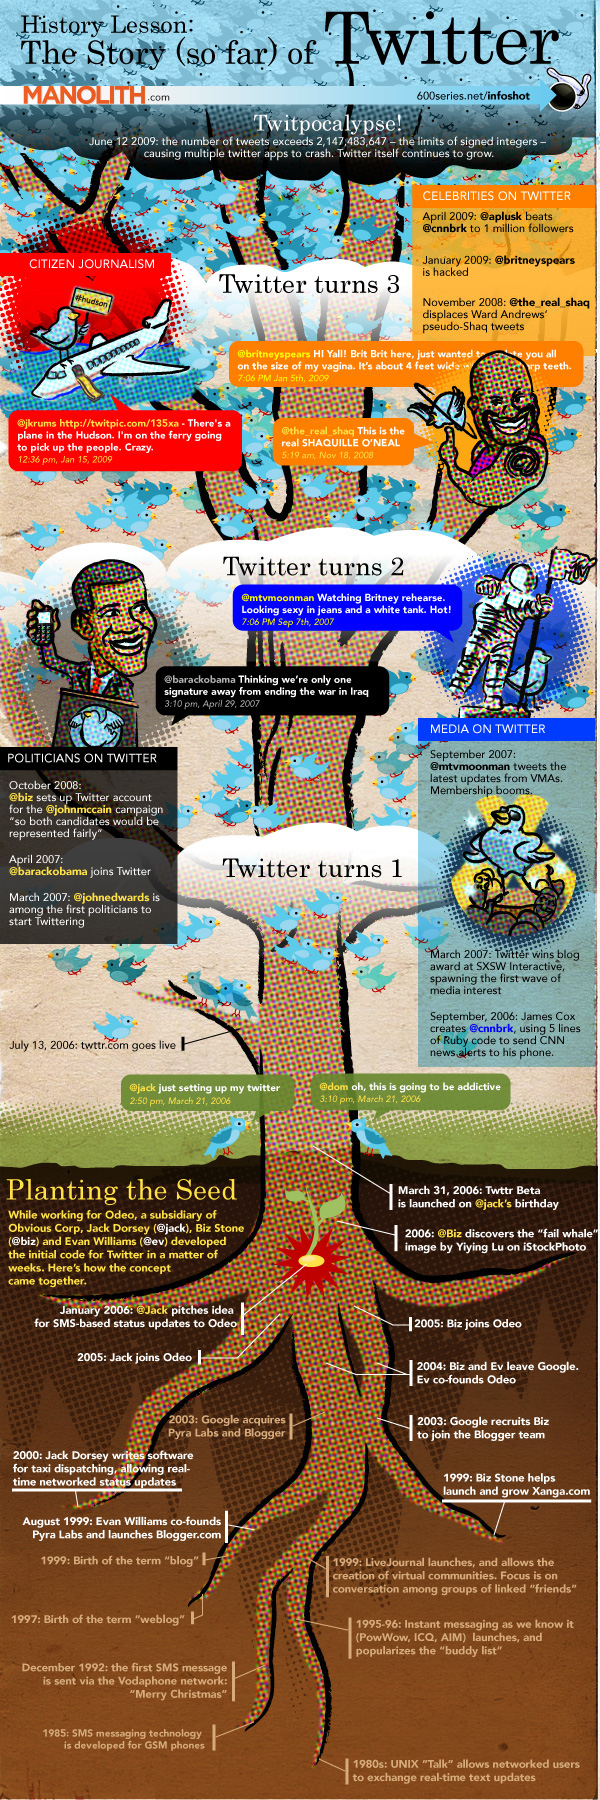 Twitter.com will celebrate tomorrow its first 4 years. Time for a little history lesson from Twitter in a nice overview: